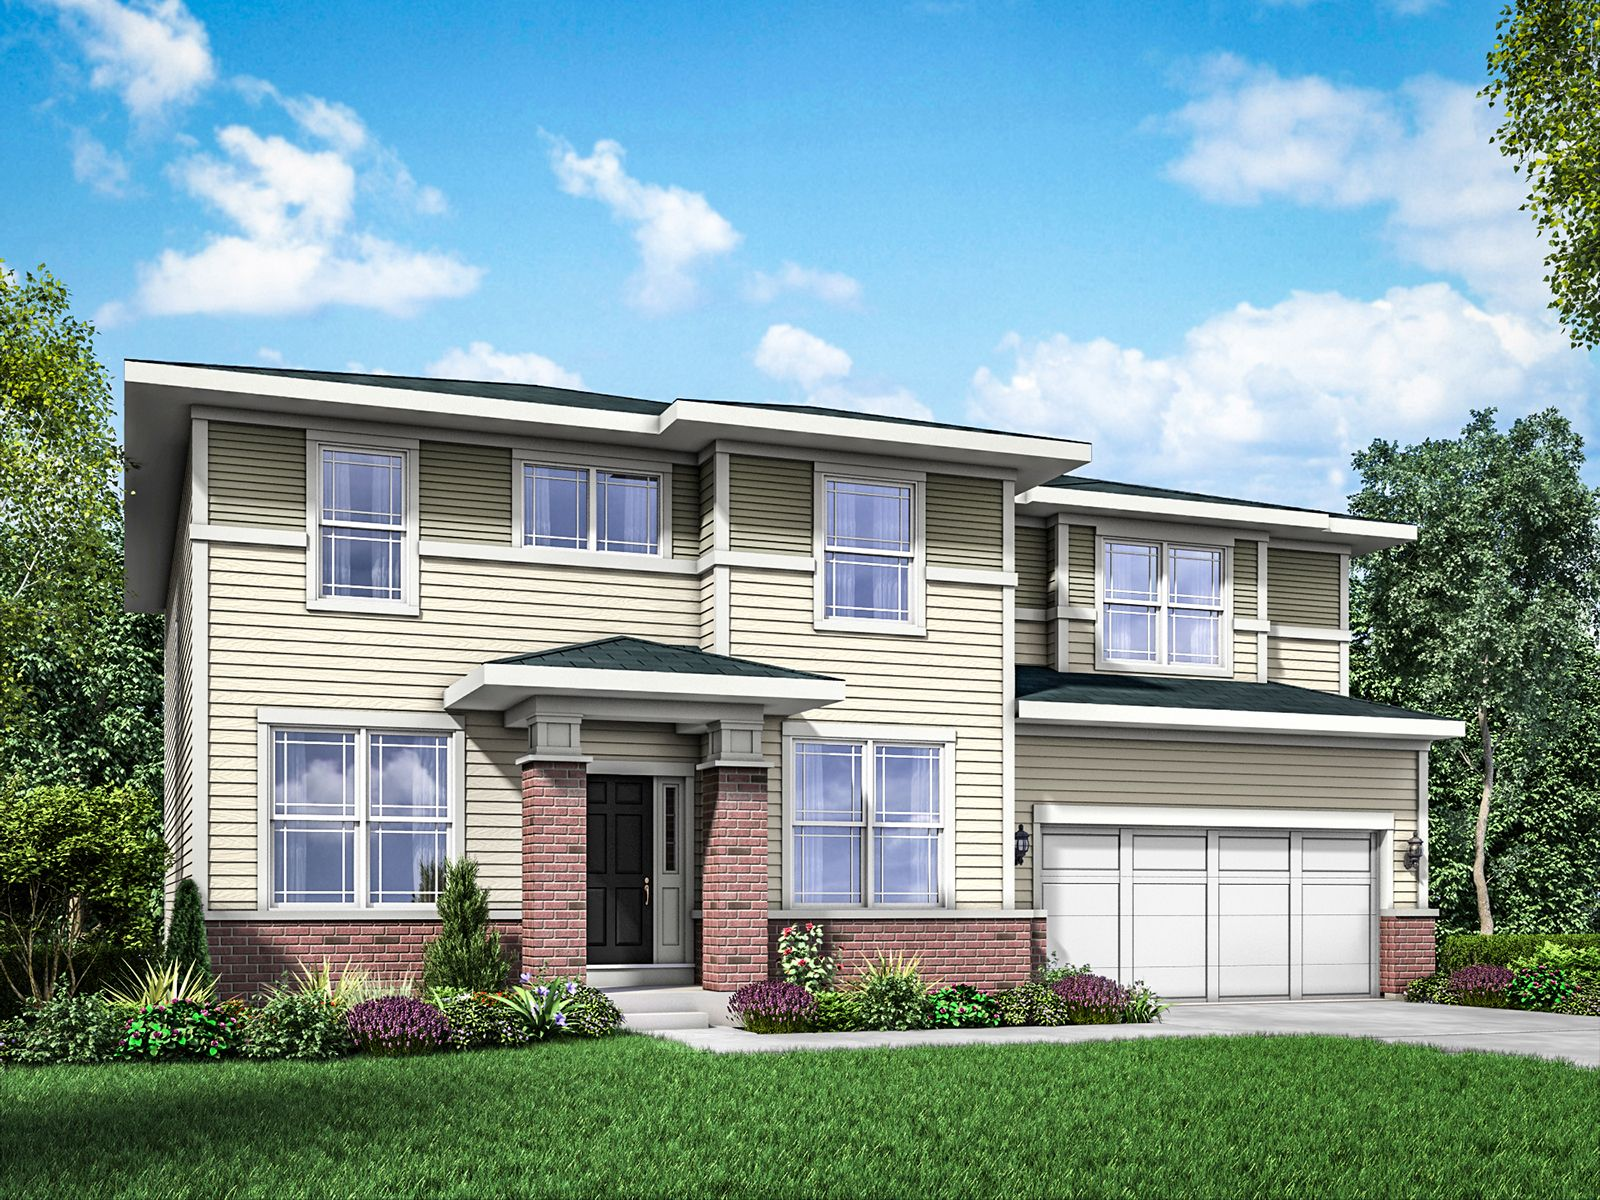 Exterior featured in the Jericho II By William Ryan Homes in Chicago, IL